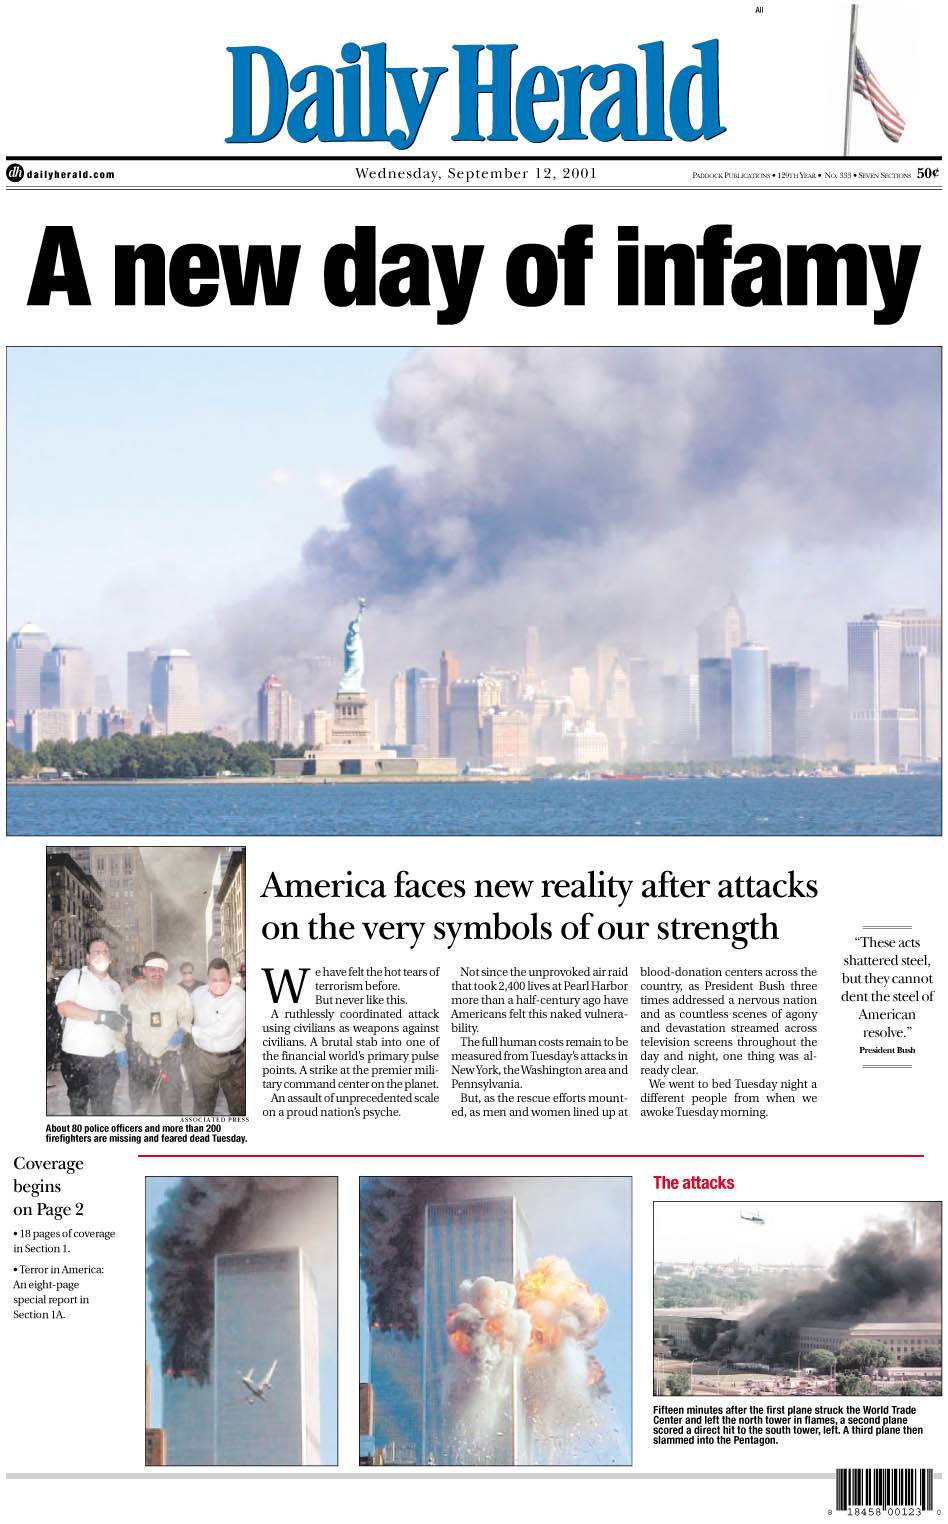 Images: Sept. 11, 2001 newspaper fronts